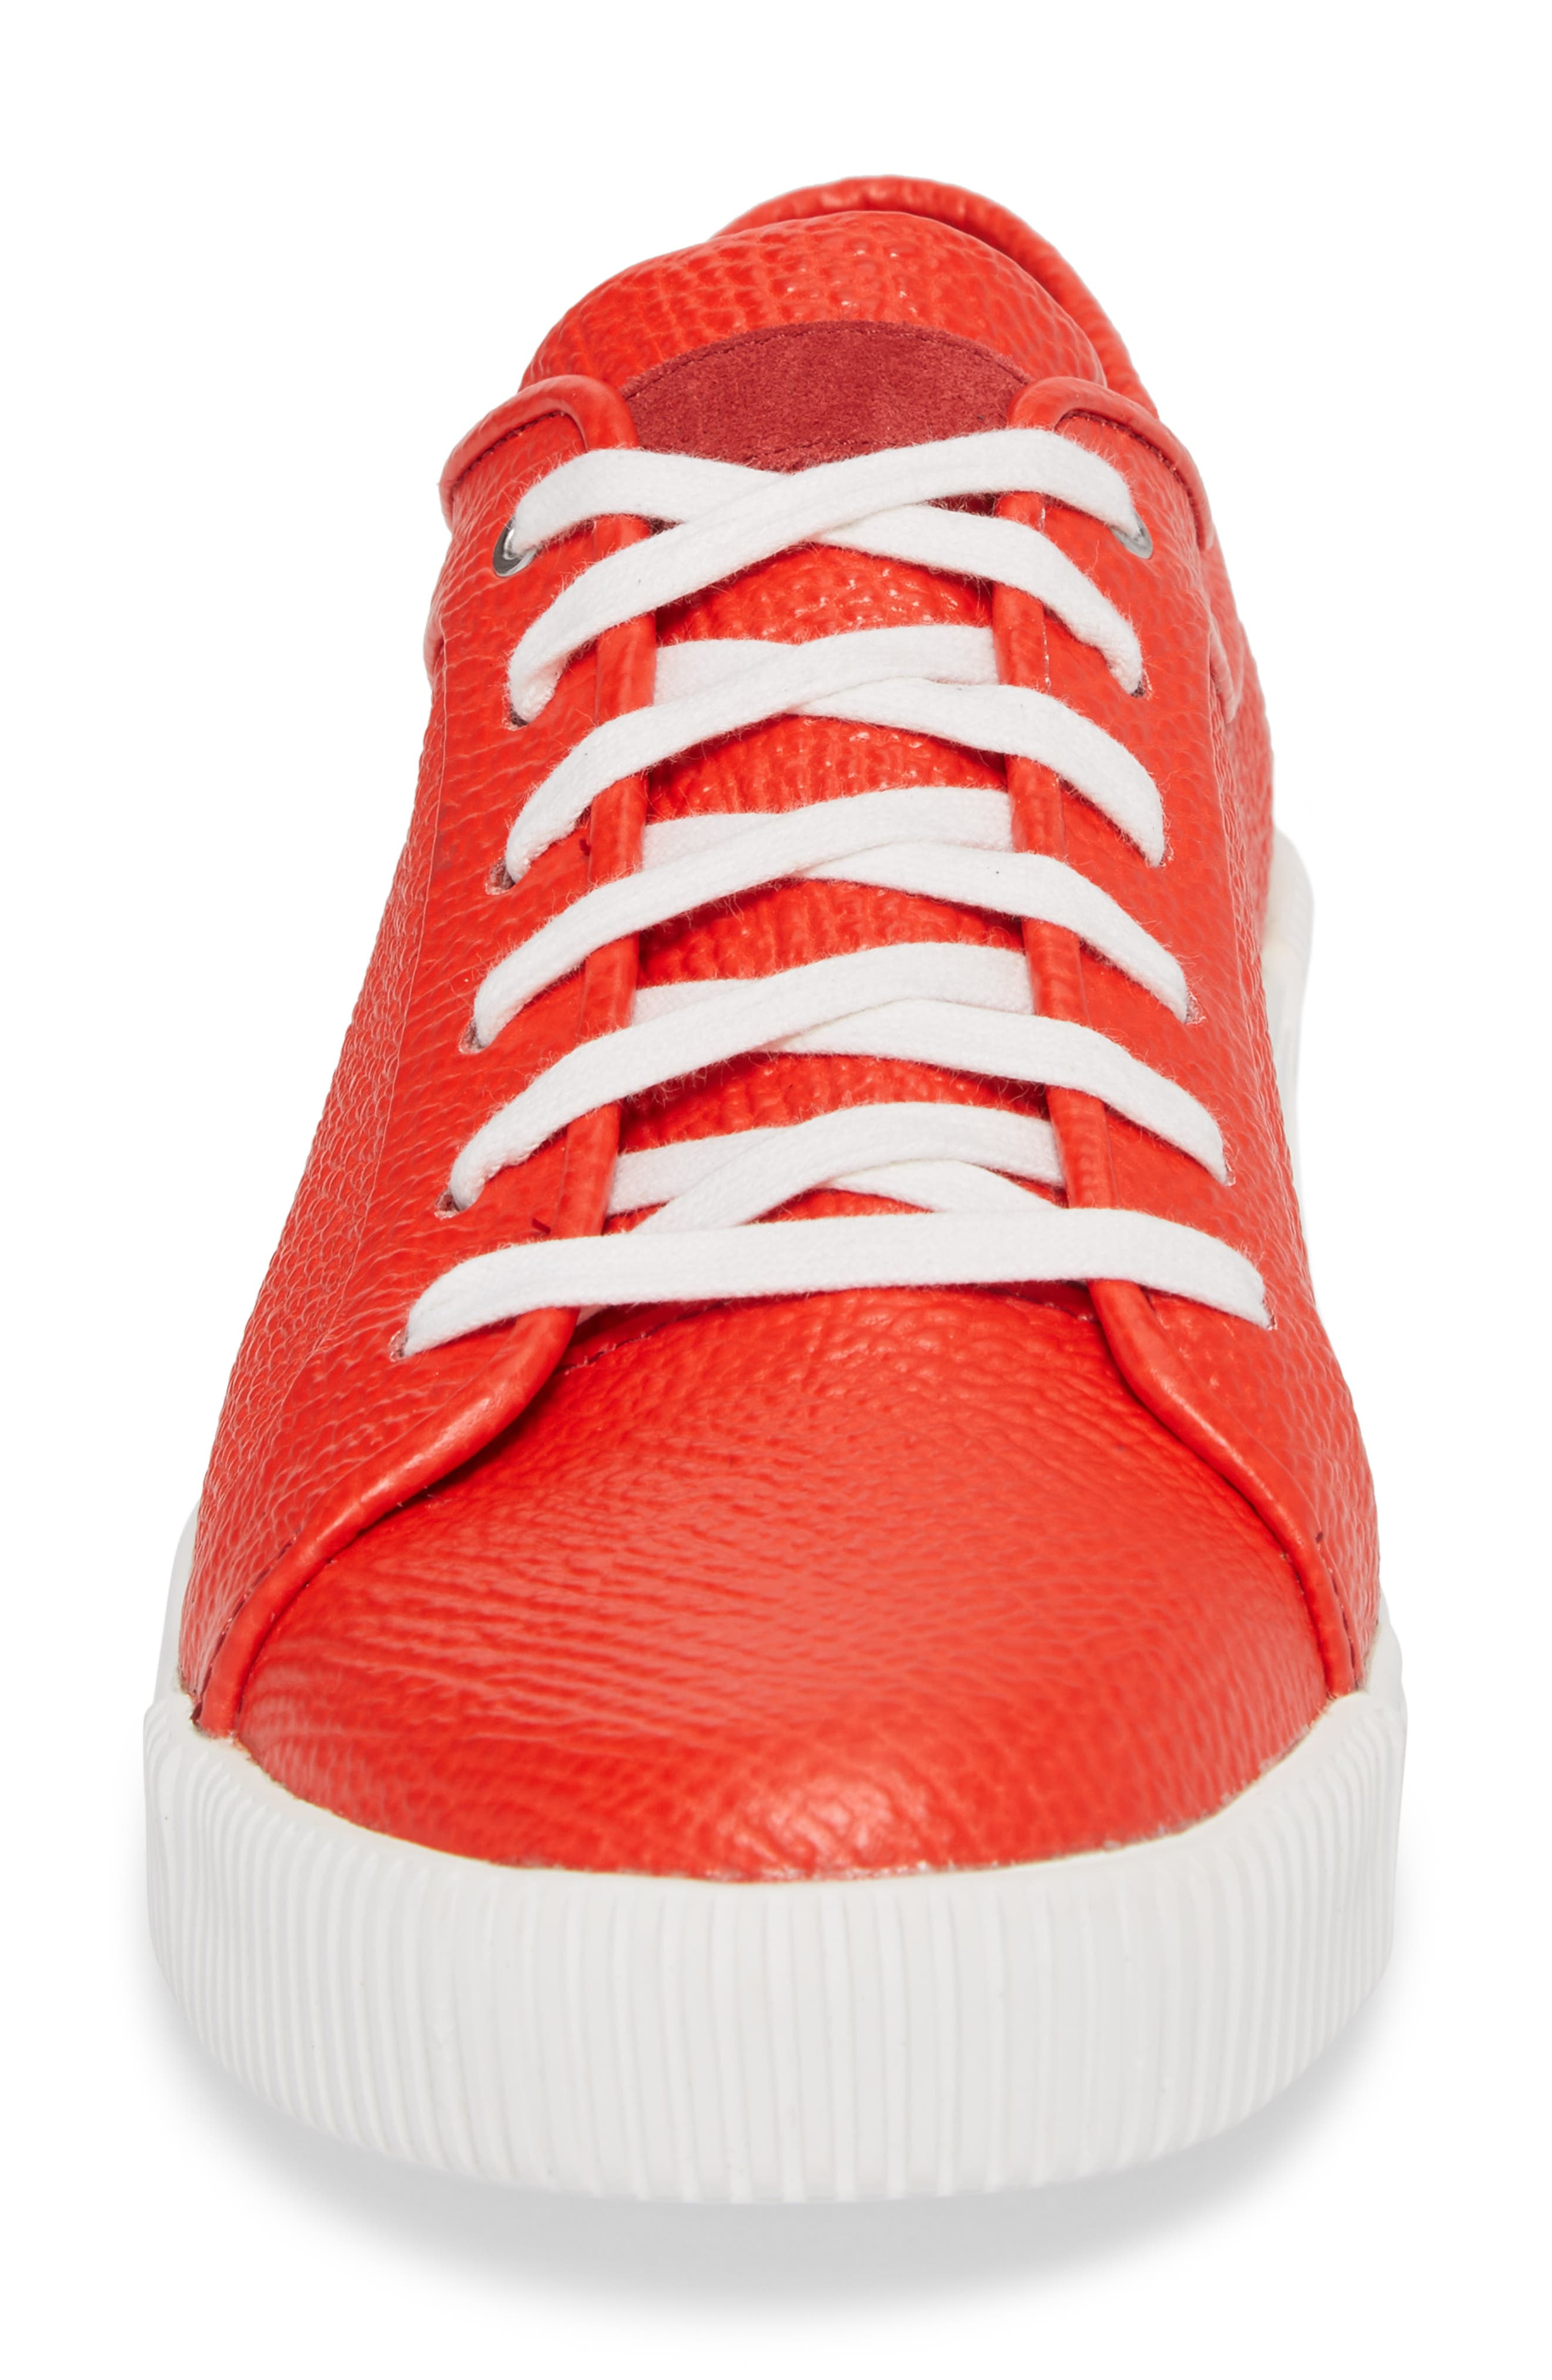 Lyons Low Top Sneaker,                             Alternate thumbnail 4, color,                             Red Leather